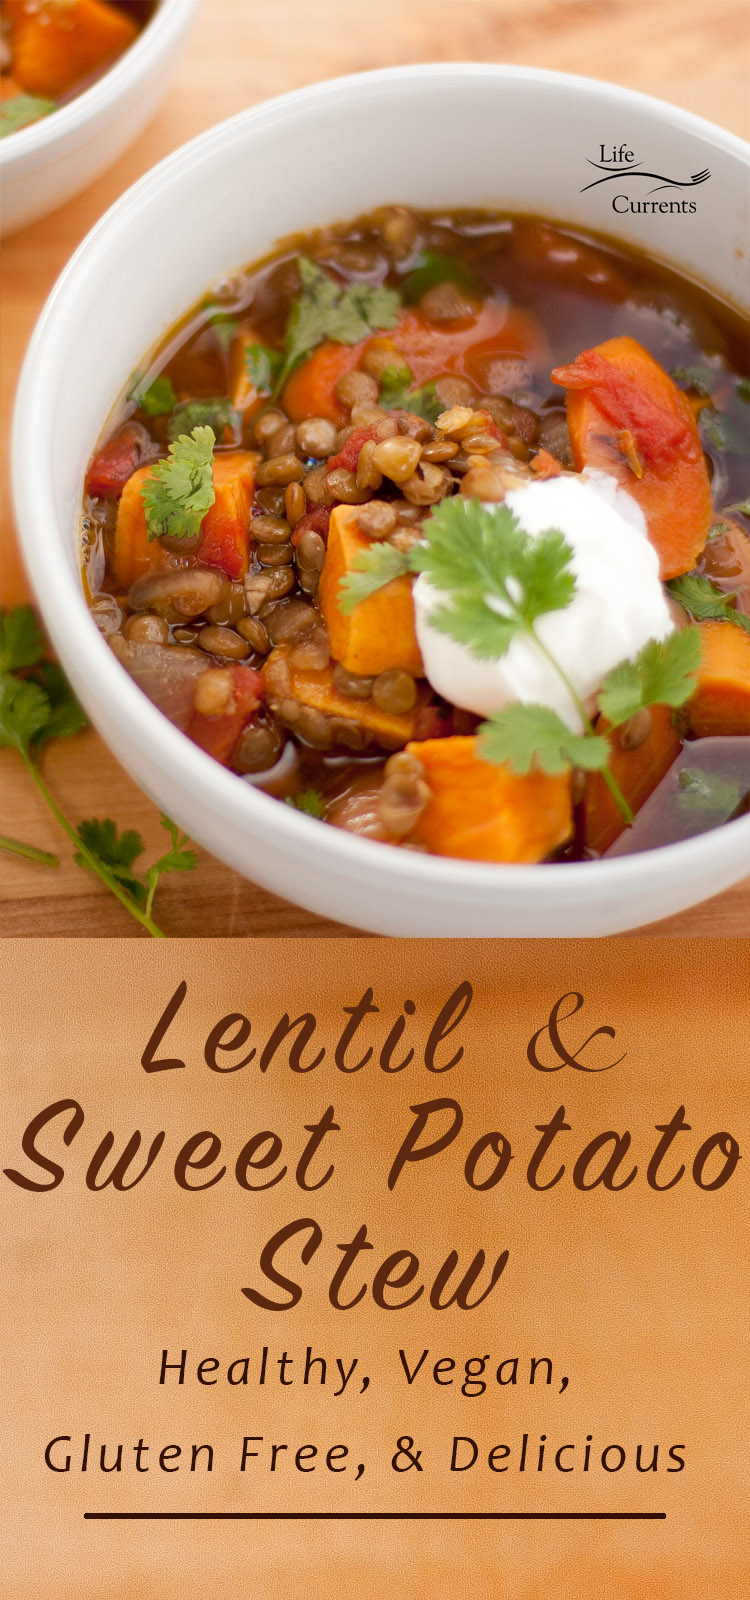 Lentil and Sweet Potato Stew A great, easy to make, healthy vegan dinner that's made with ingredients I usually have in the house